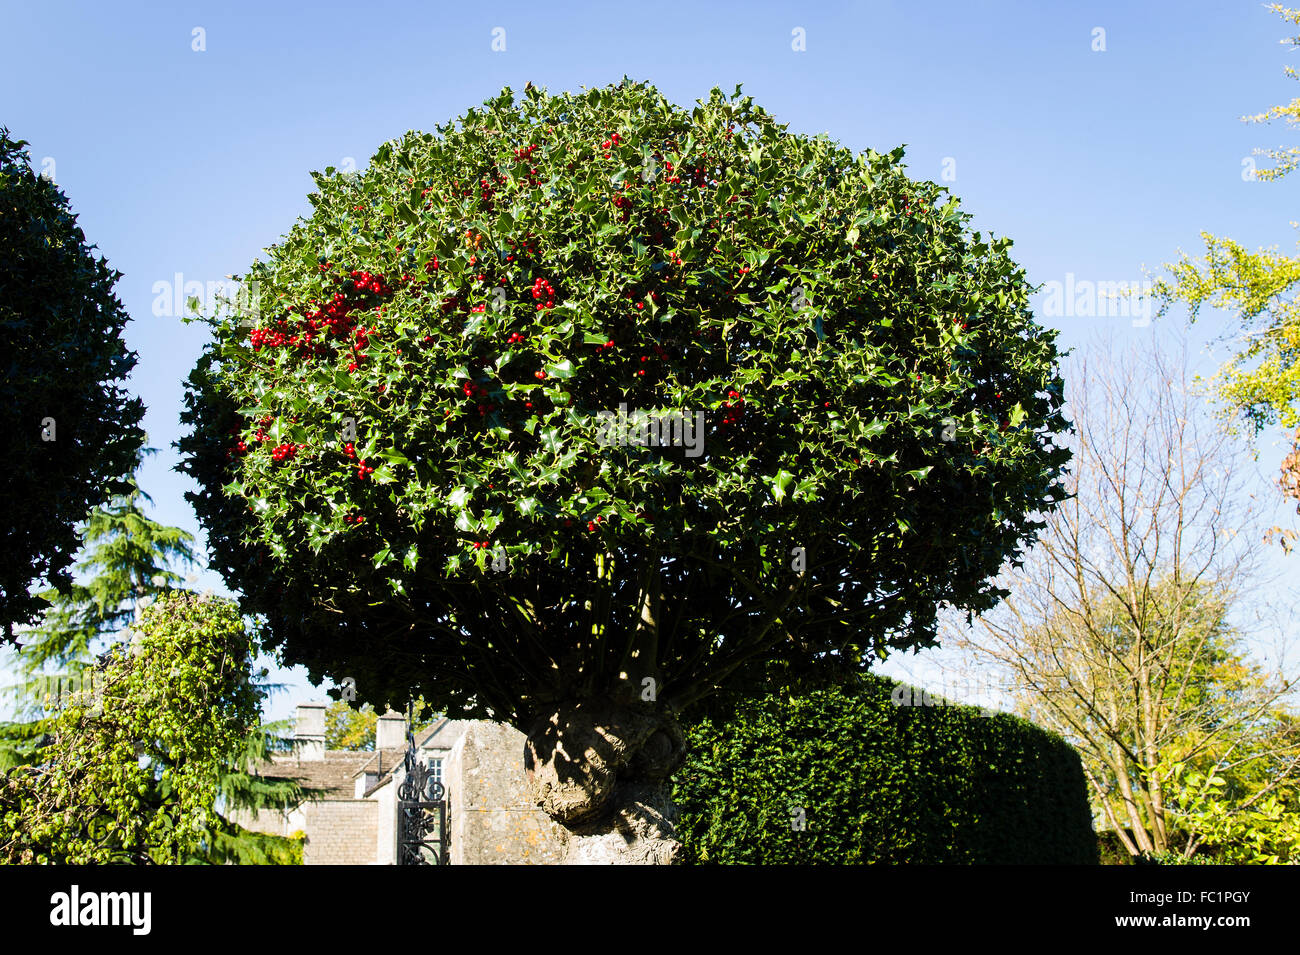 A round berried holly tree in an English garden - Stock Image